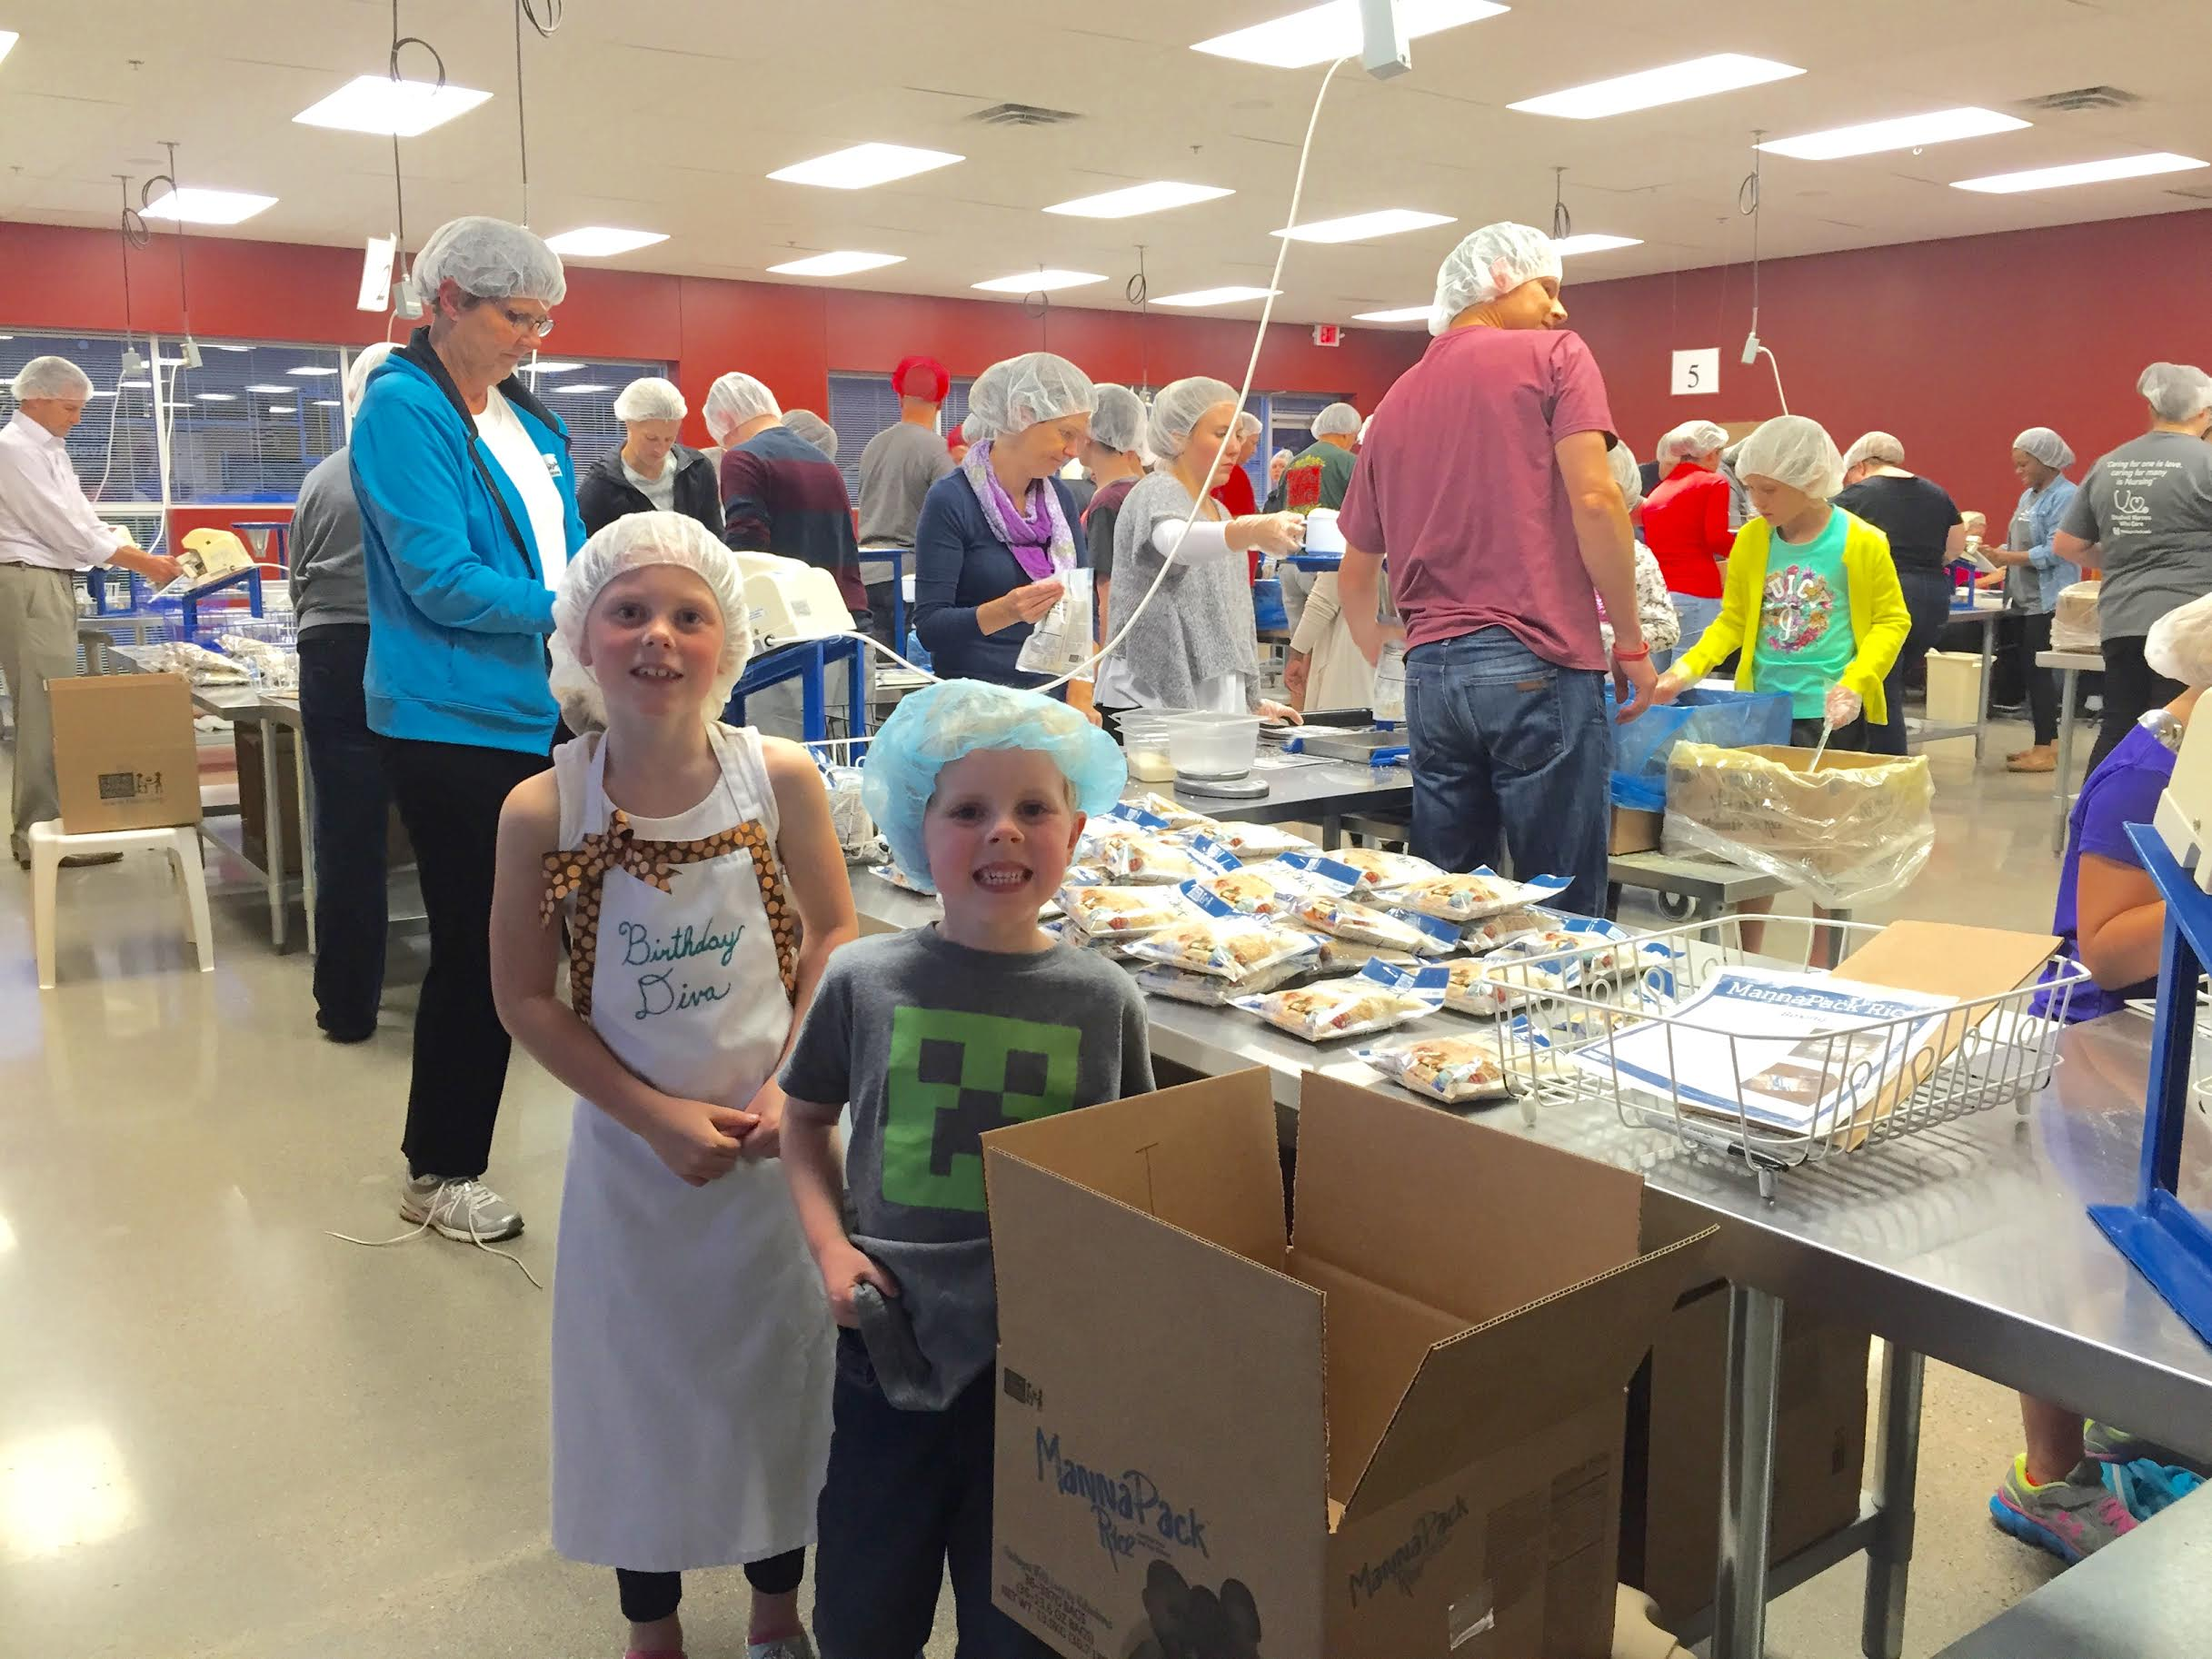 Mercedes chose to celebrate her 8th birthday with friends at the Feed My Starving Children site in Chanhassen, Minnesota.